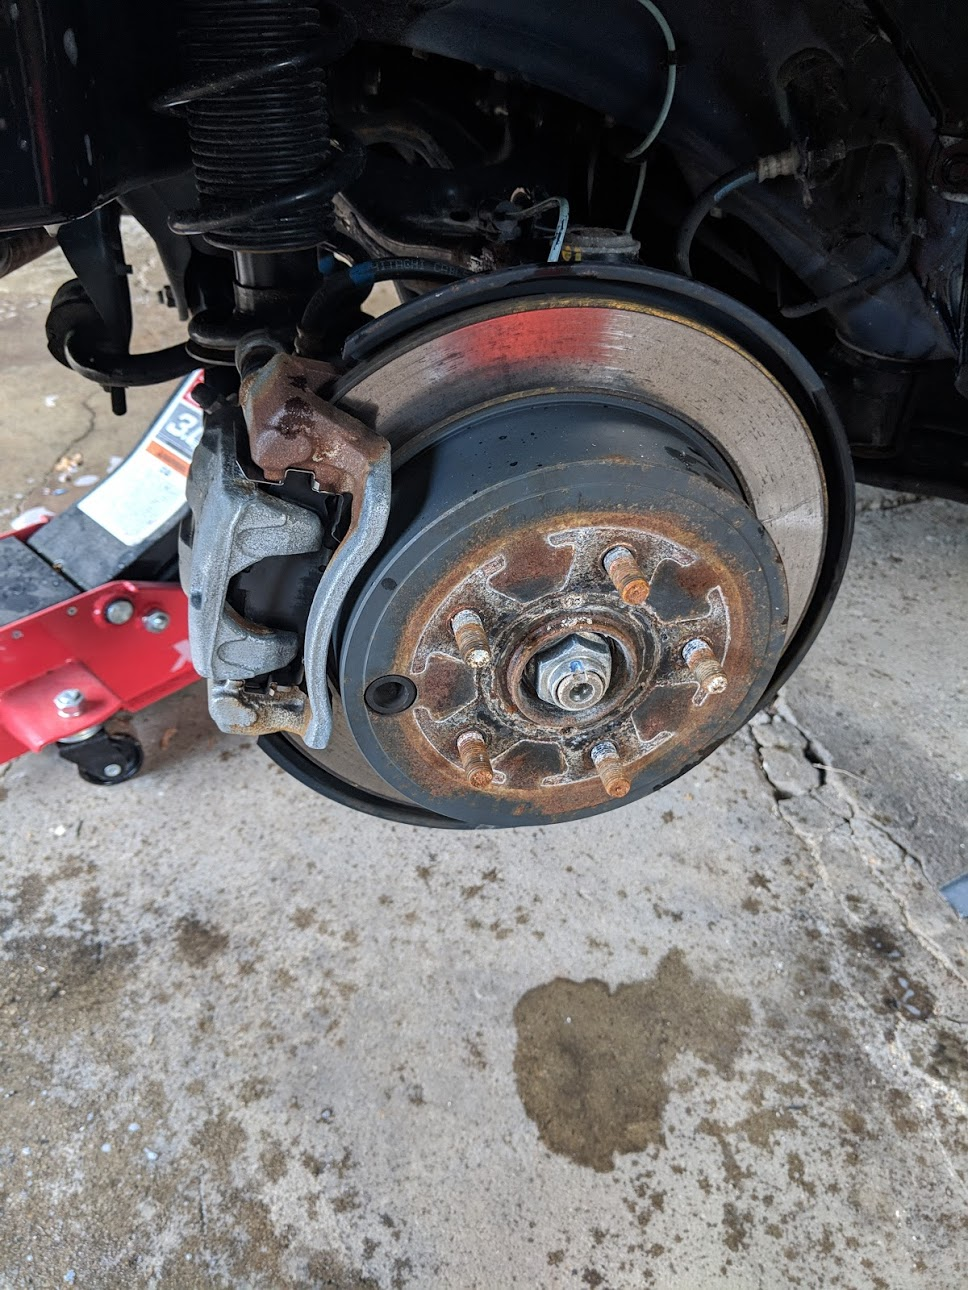 The stock, rusted WRX calipers